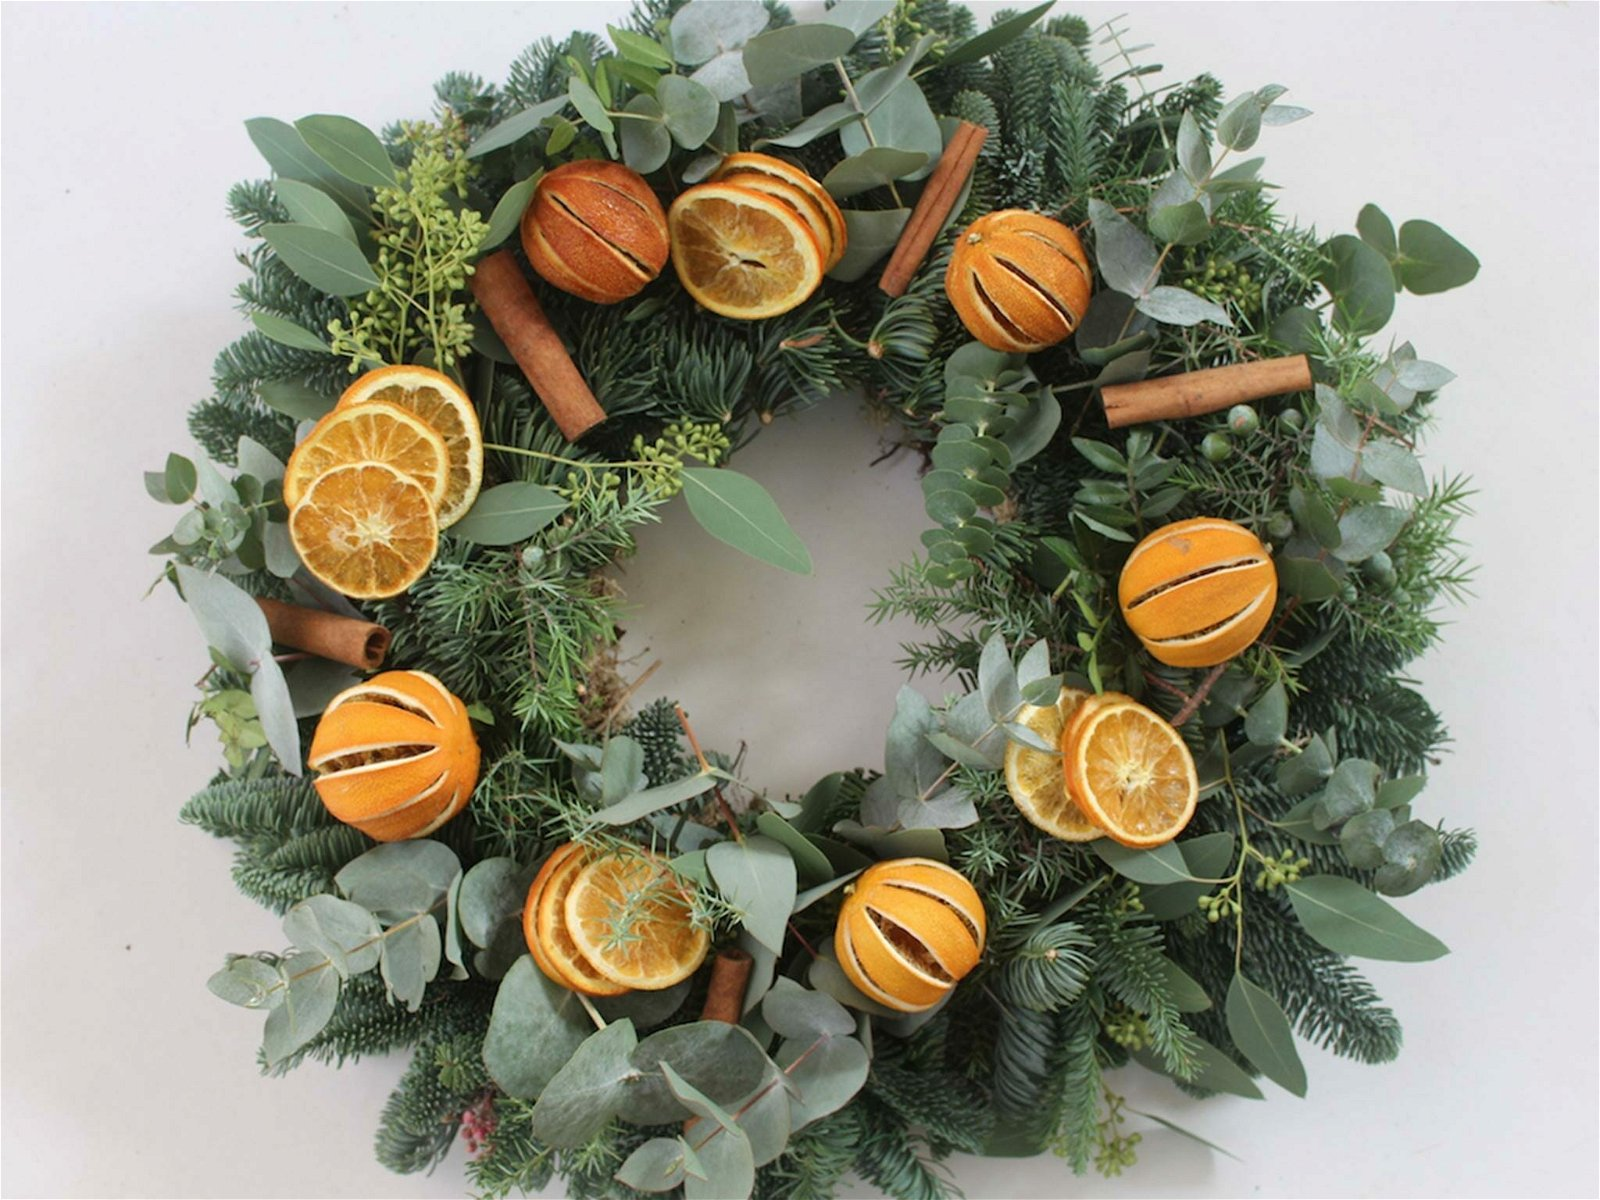 citrus and cinnamon winter wreath idea